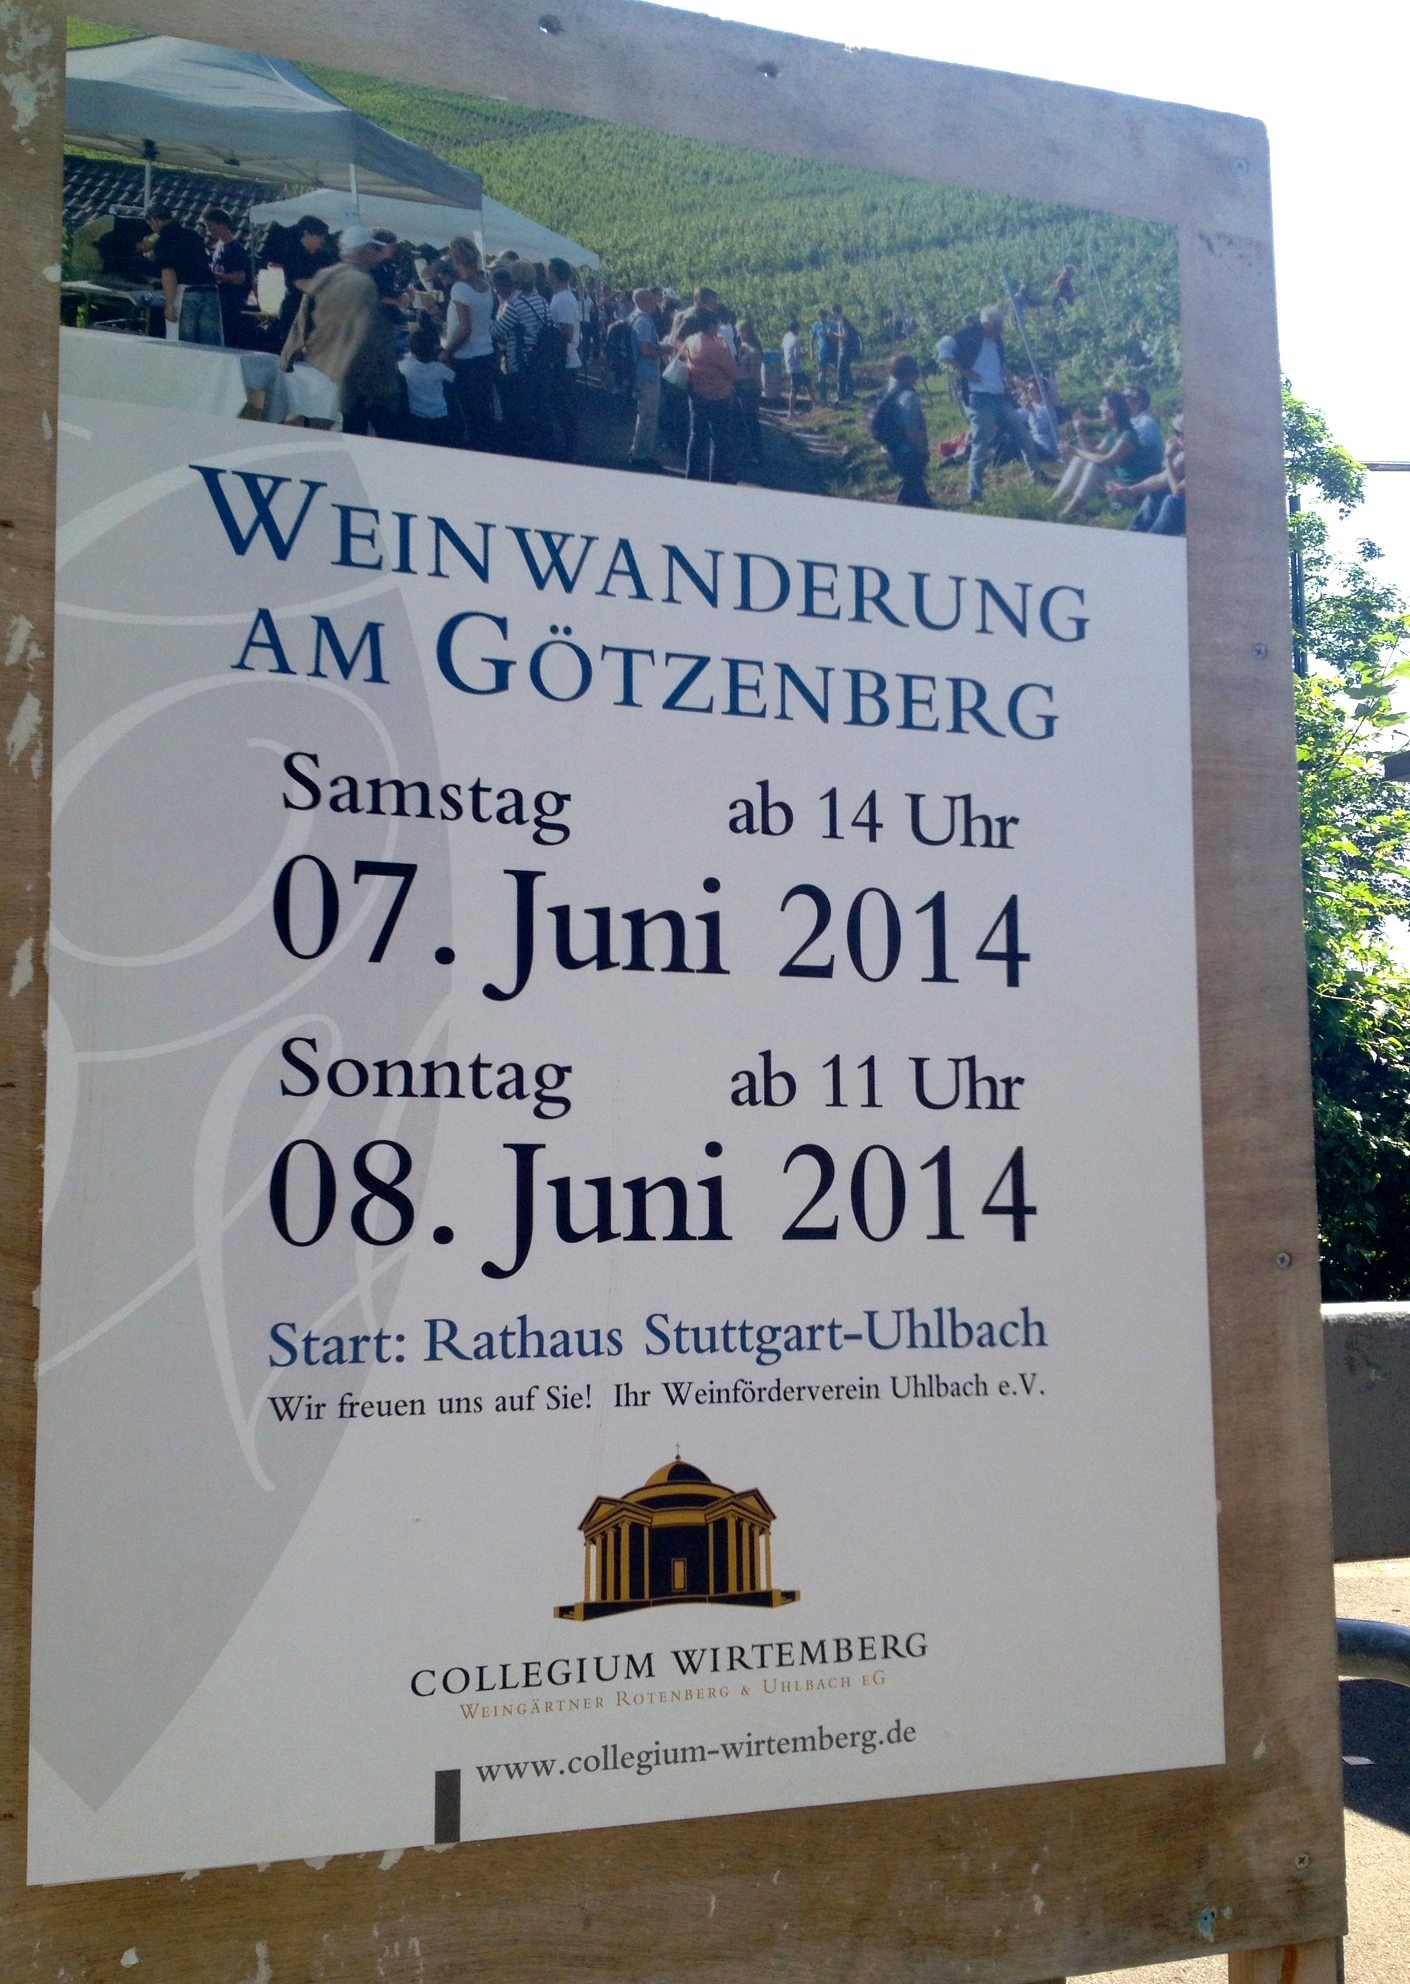 A poster advertising the wine walk